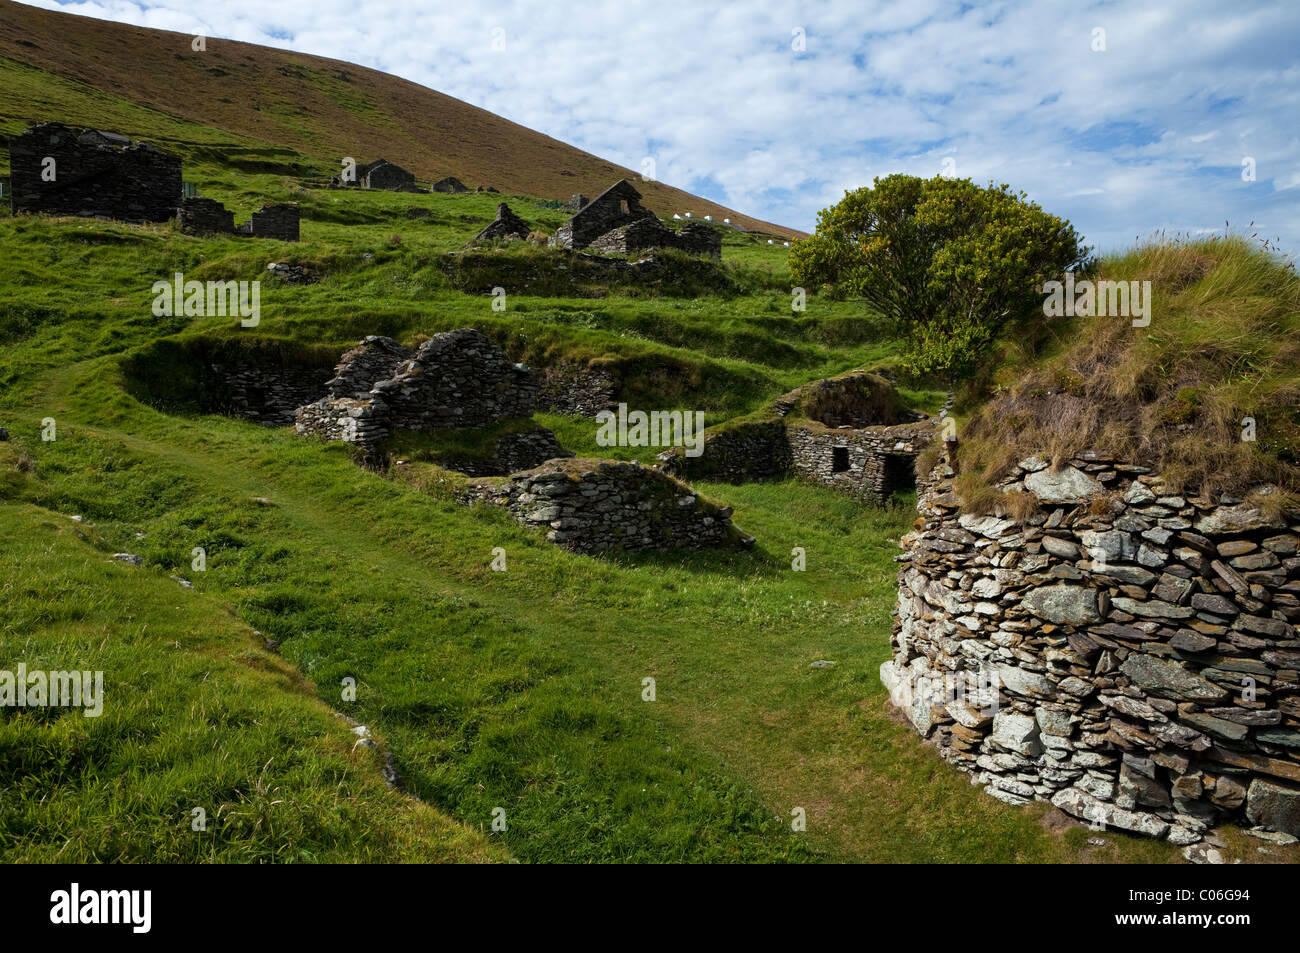 Deserted Cottages on Great Blasket Island, The Blasket Islands, Off Slea Head on the Dingle Peninsula, County Kerry, - Stock Image